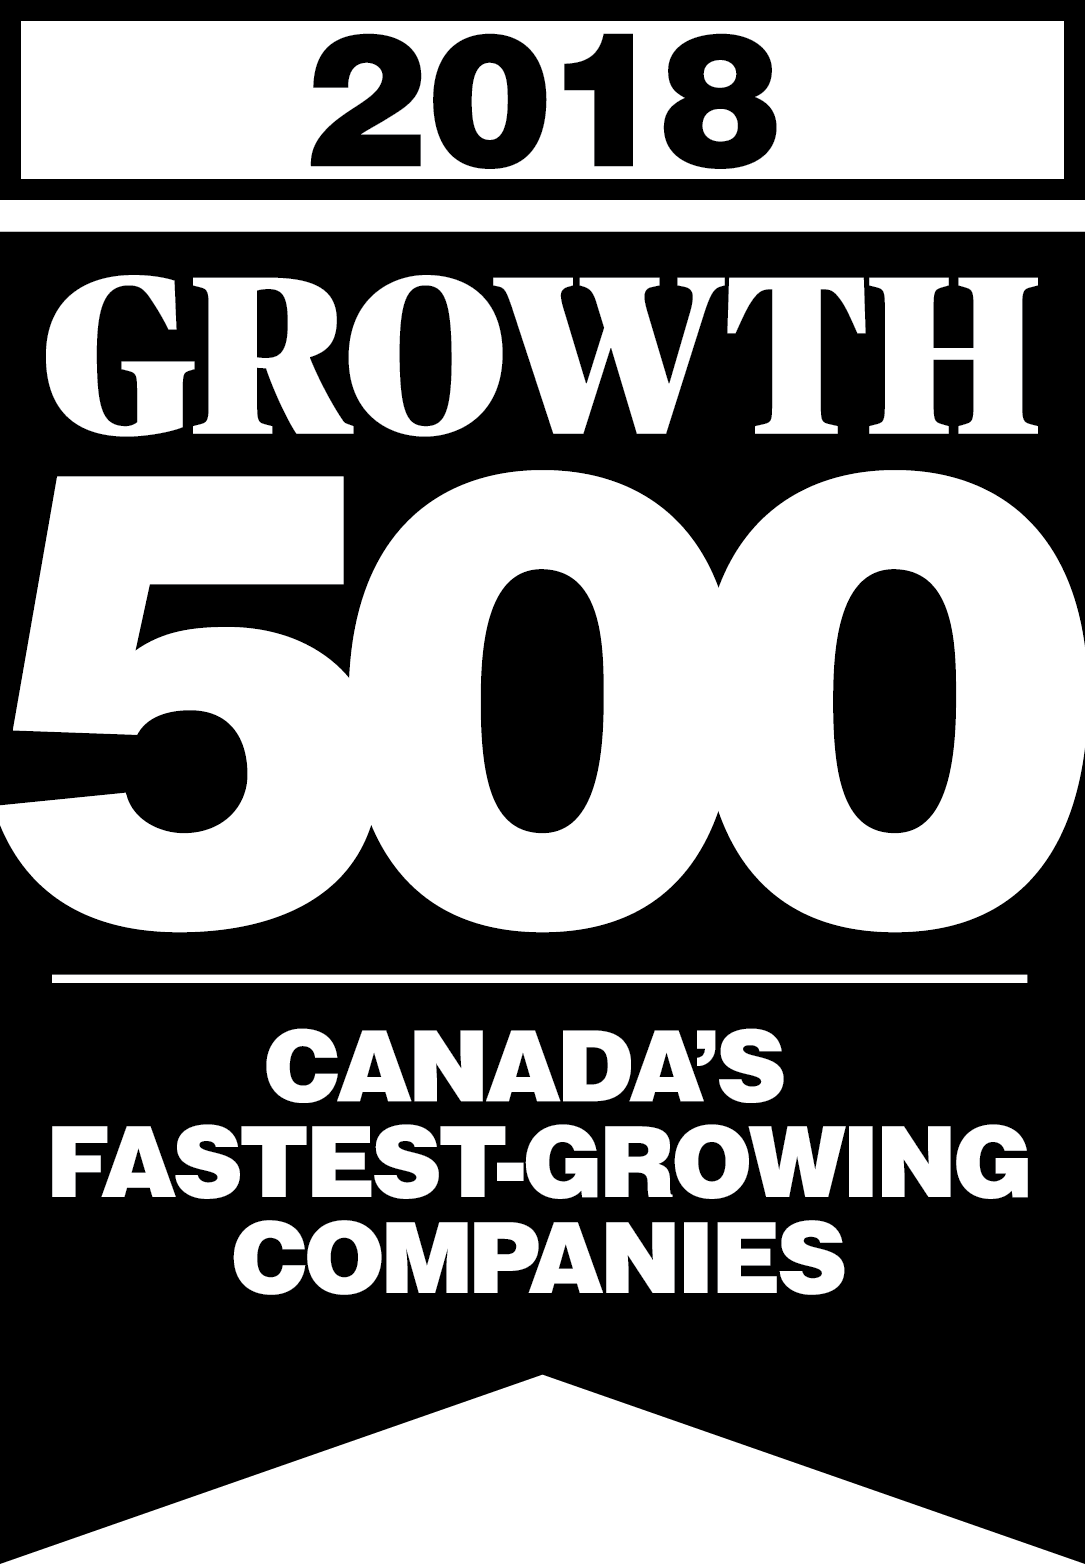 Growth 500 - Canada's Fastest Growing Companies